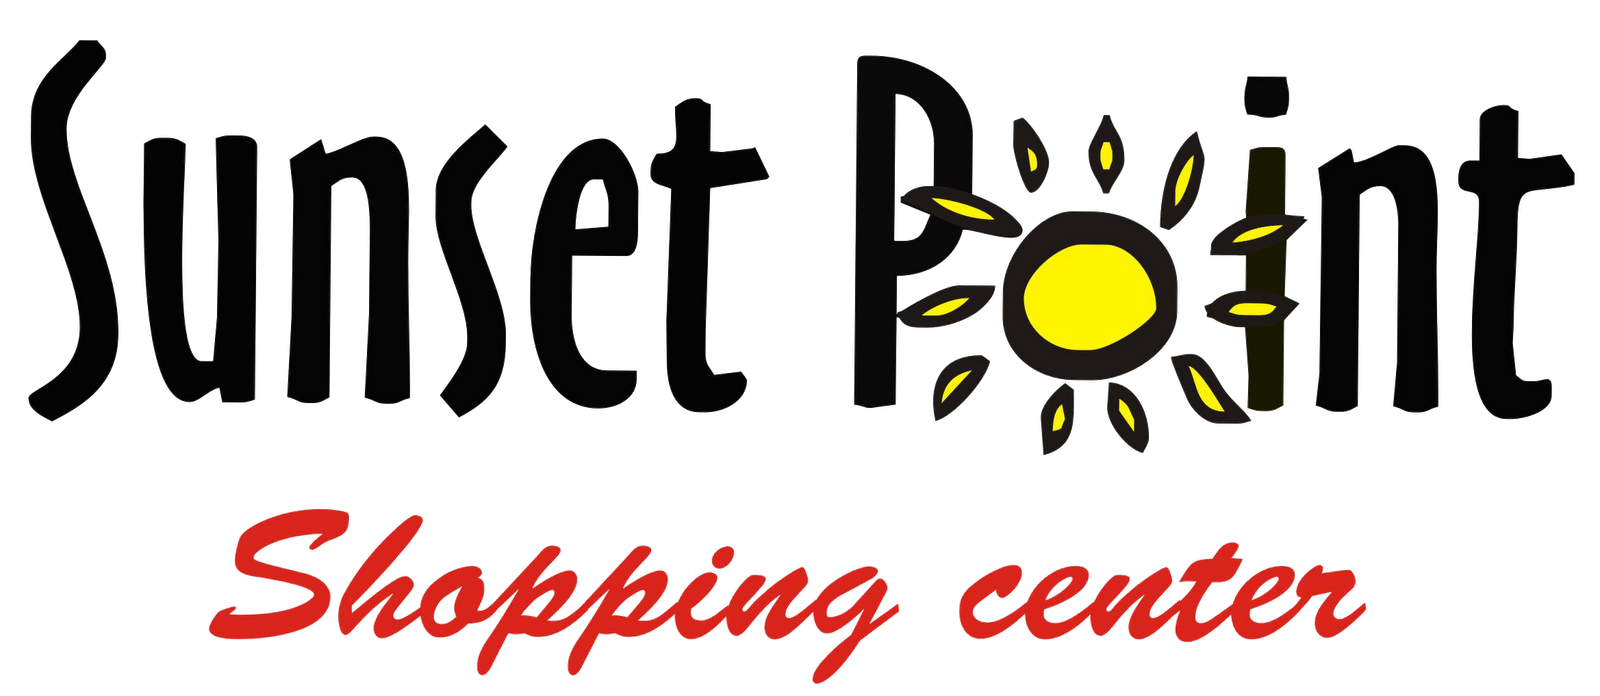 email ke sunset point @ hotmail com atau sunsetpointbali @ gmail com